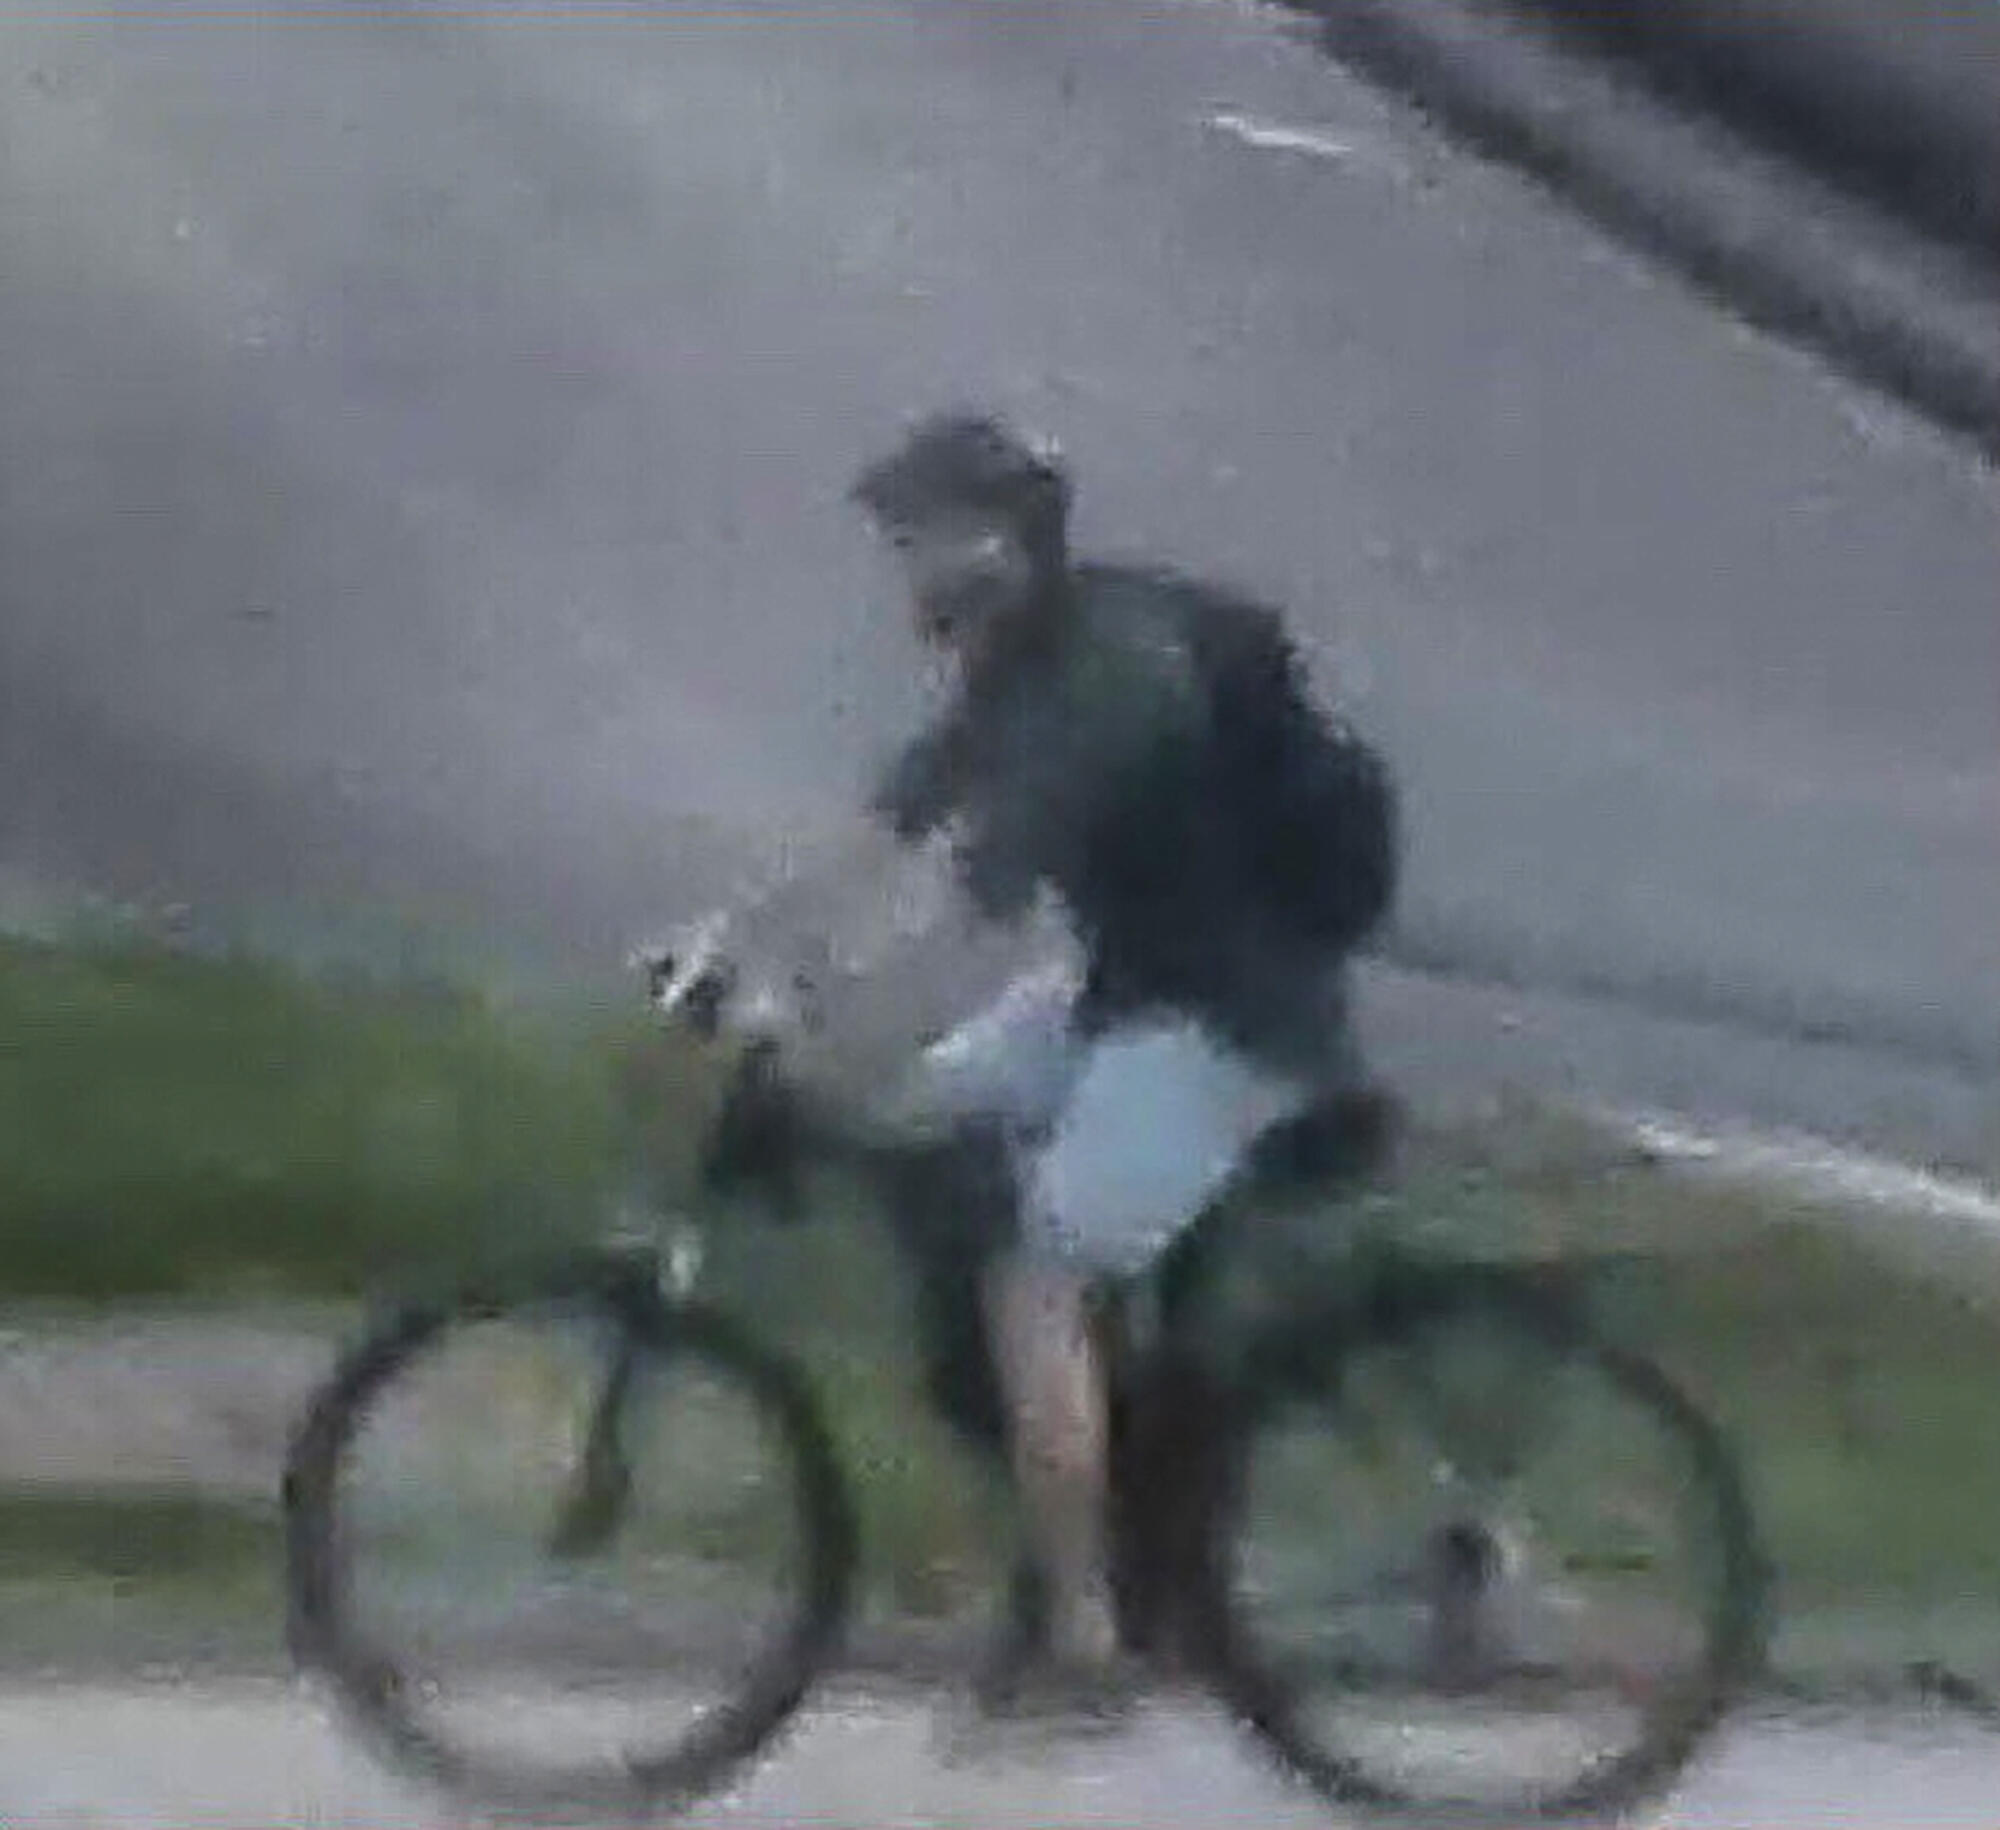 Video frame grab from a surveillance camera made available by the French Police on their Twitter account, showing a man riding a bike near the package bomb blast in Lyon.